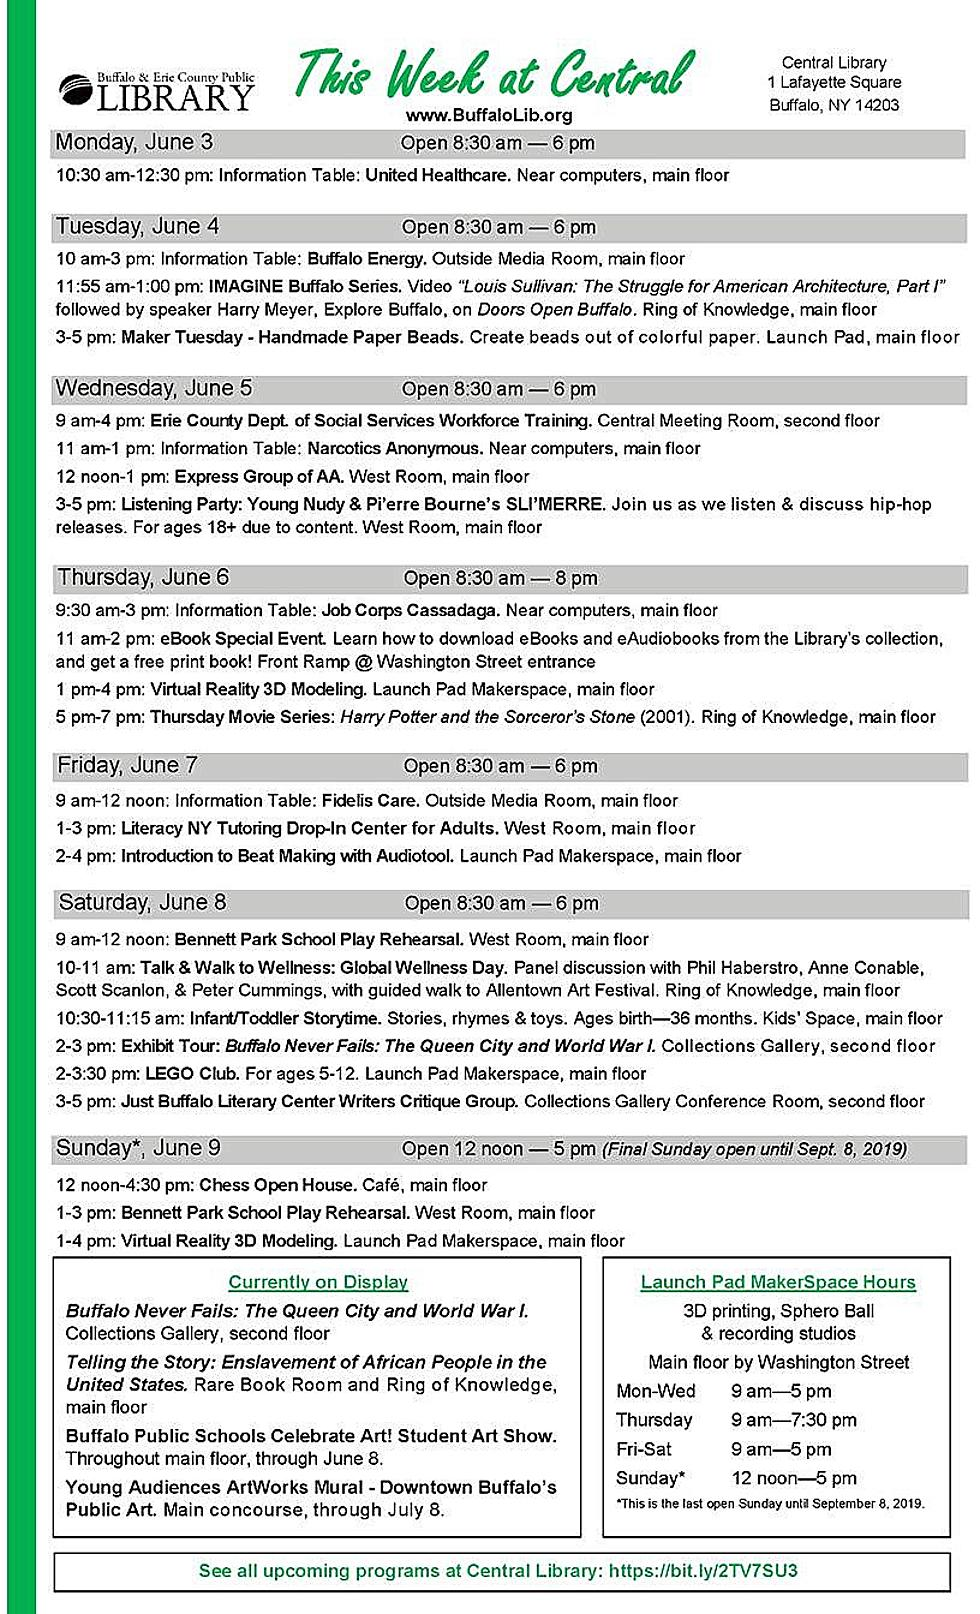 Events this Week at the Central Library